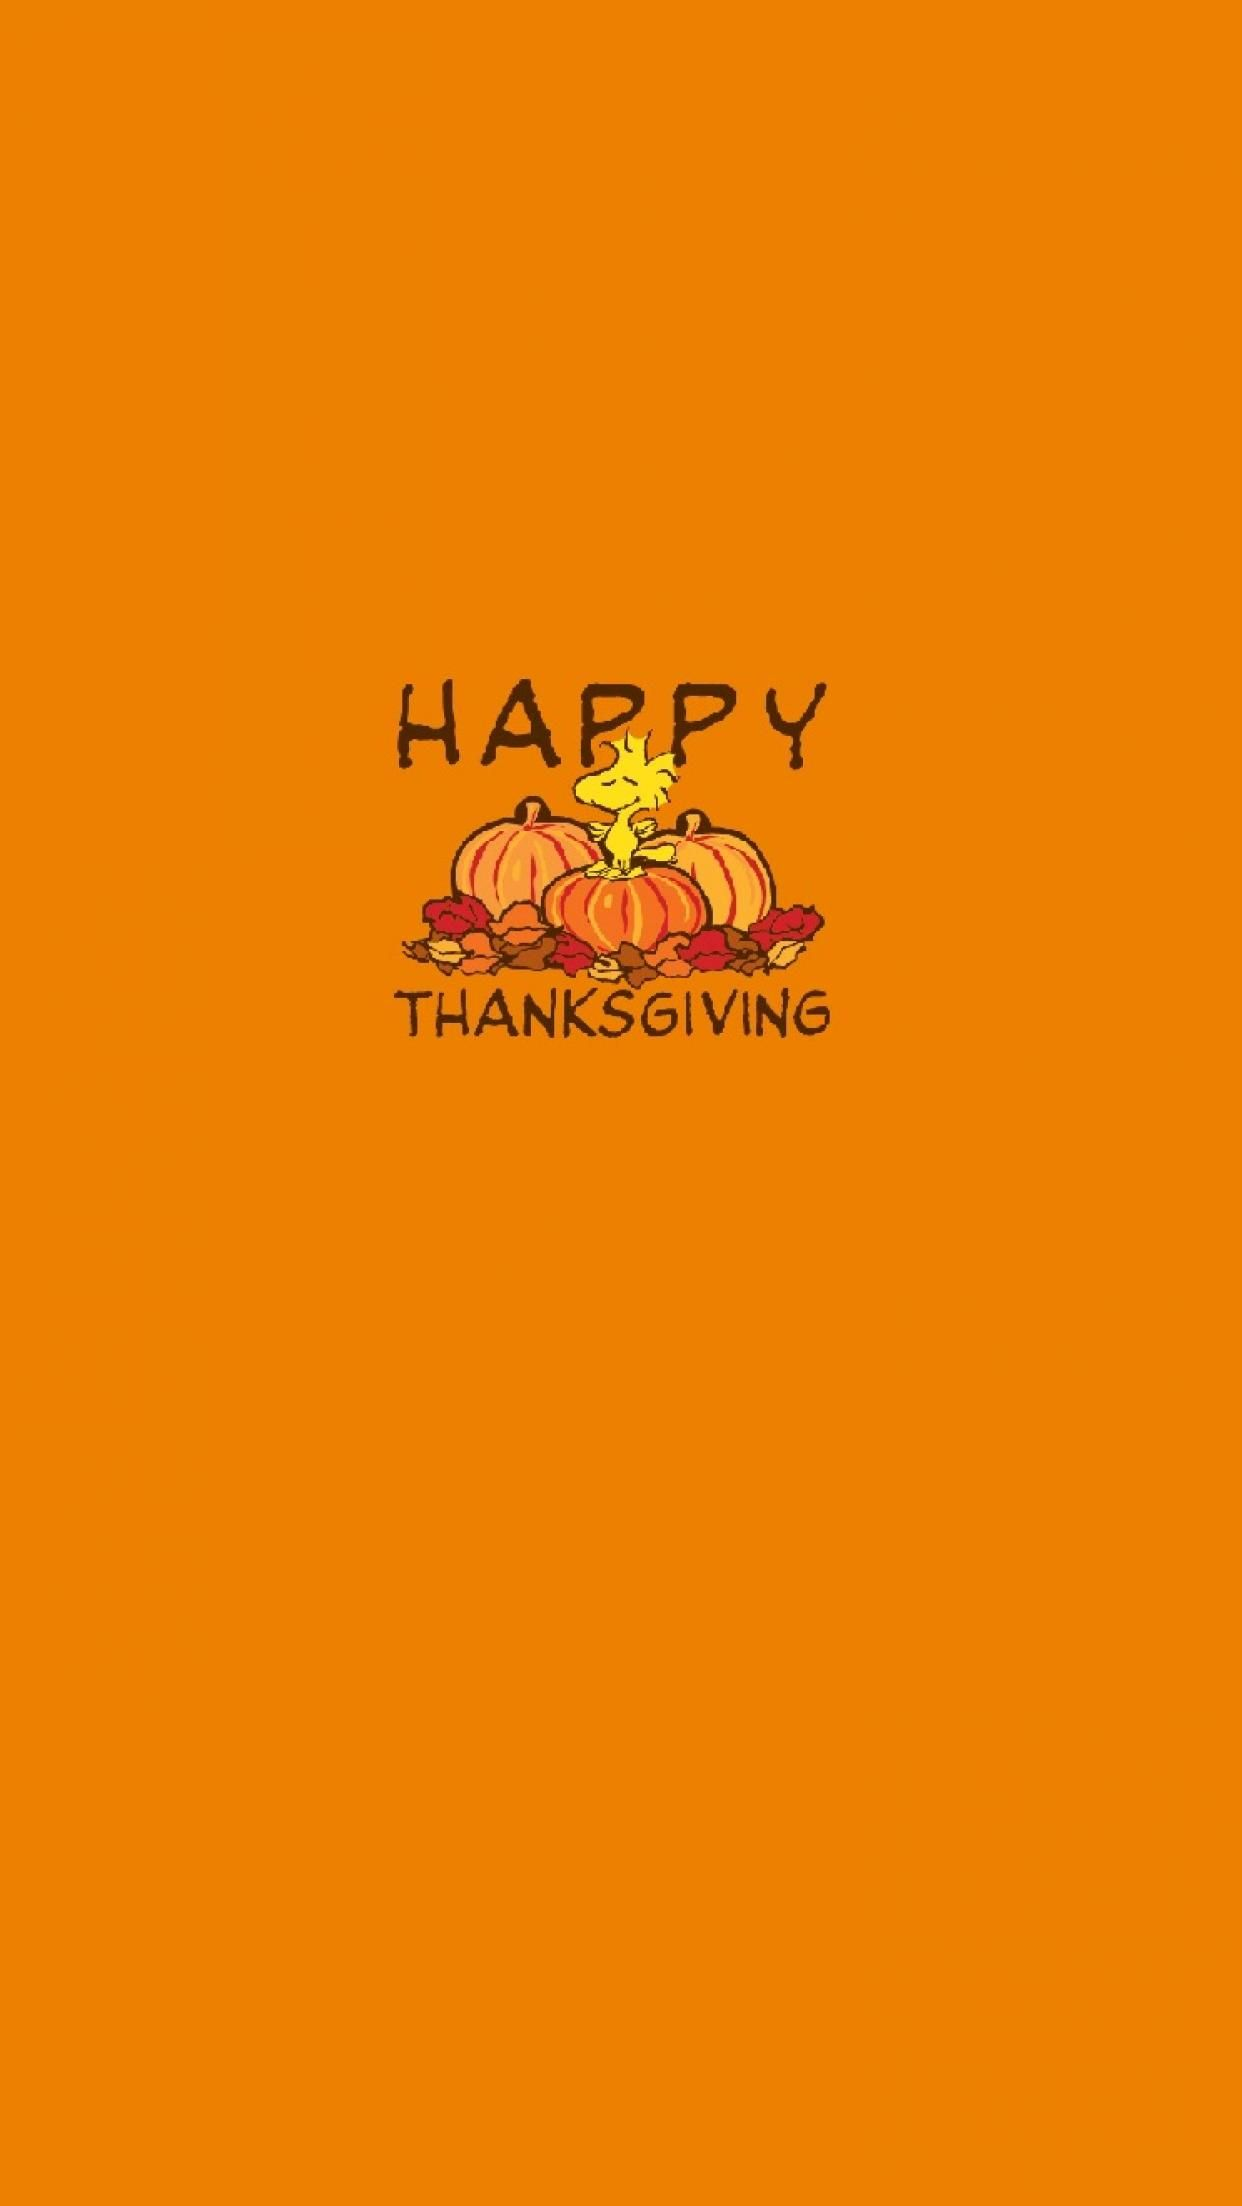 iphone 6 retina wallpaper Thanksgiving pictures, Happy